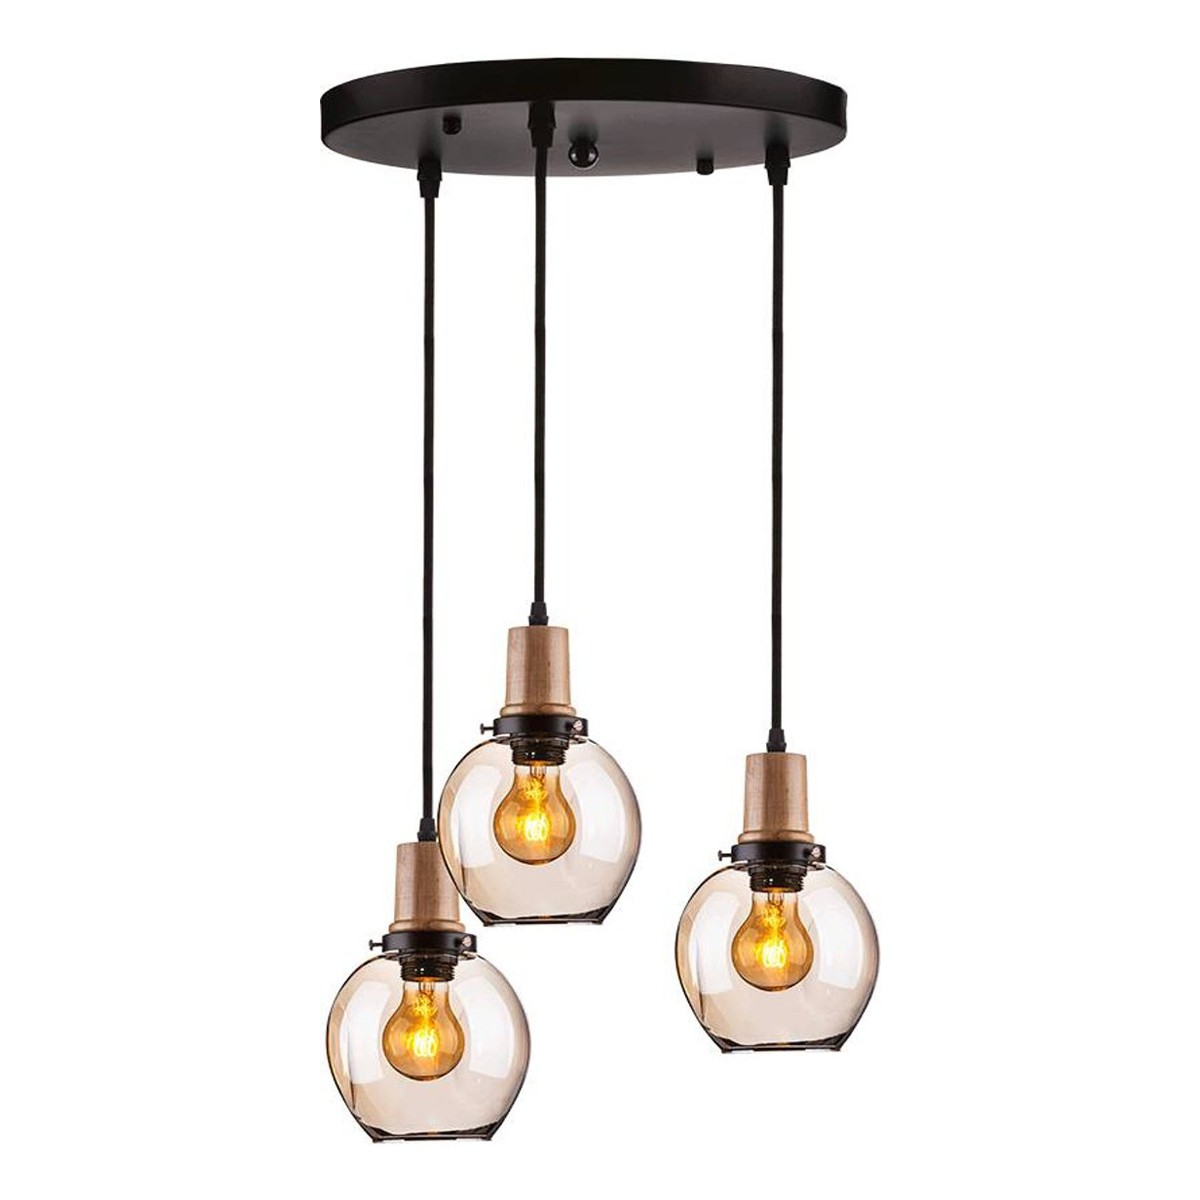 V-TAC E27 trio glass pendant lampholder with glass lampshade-amber